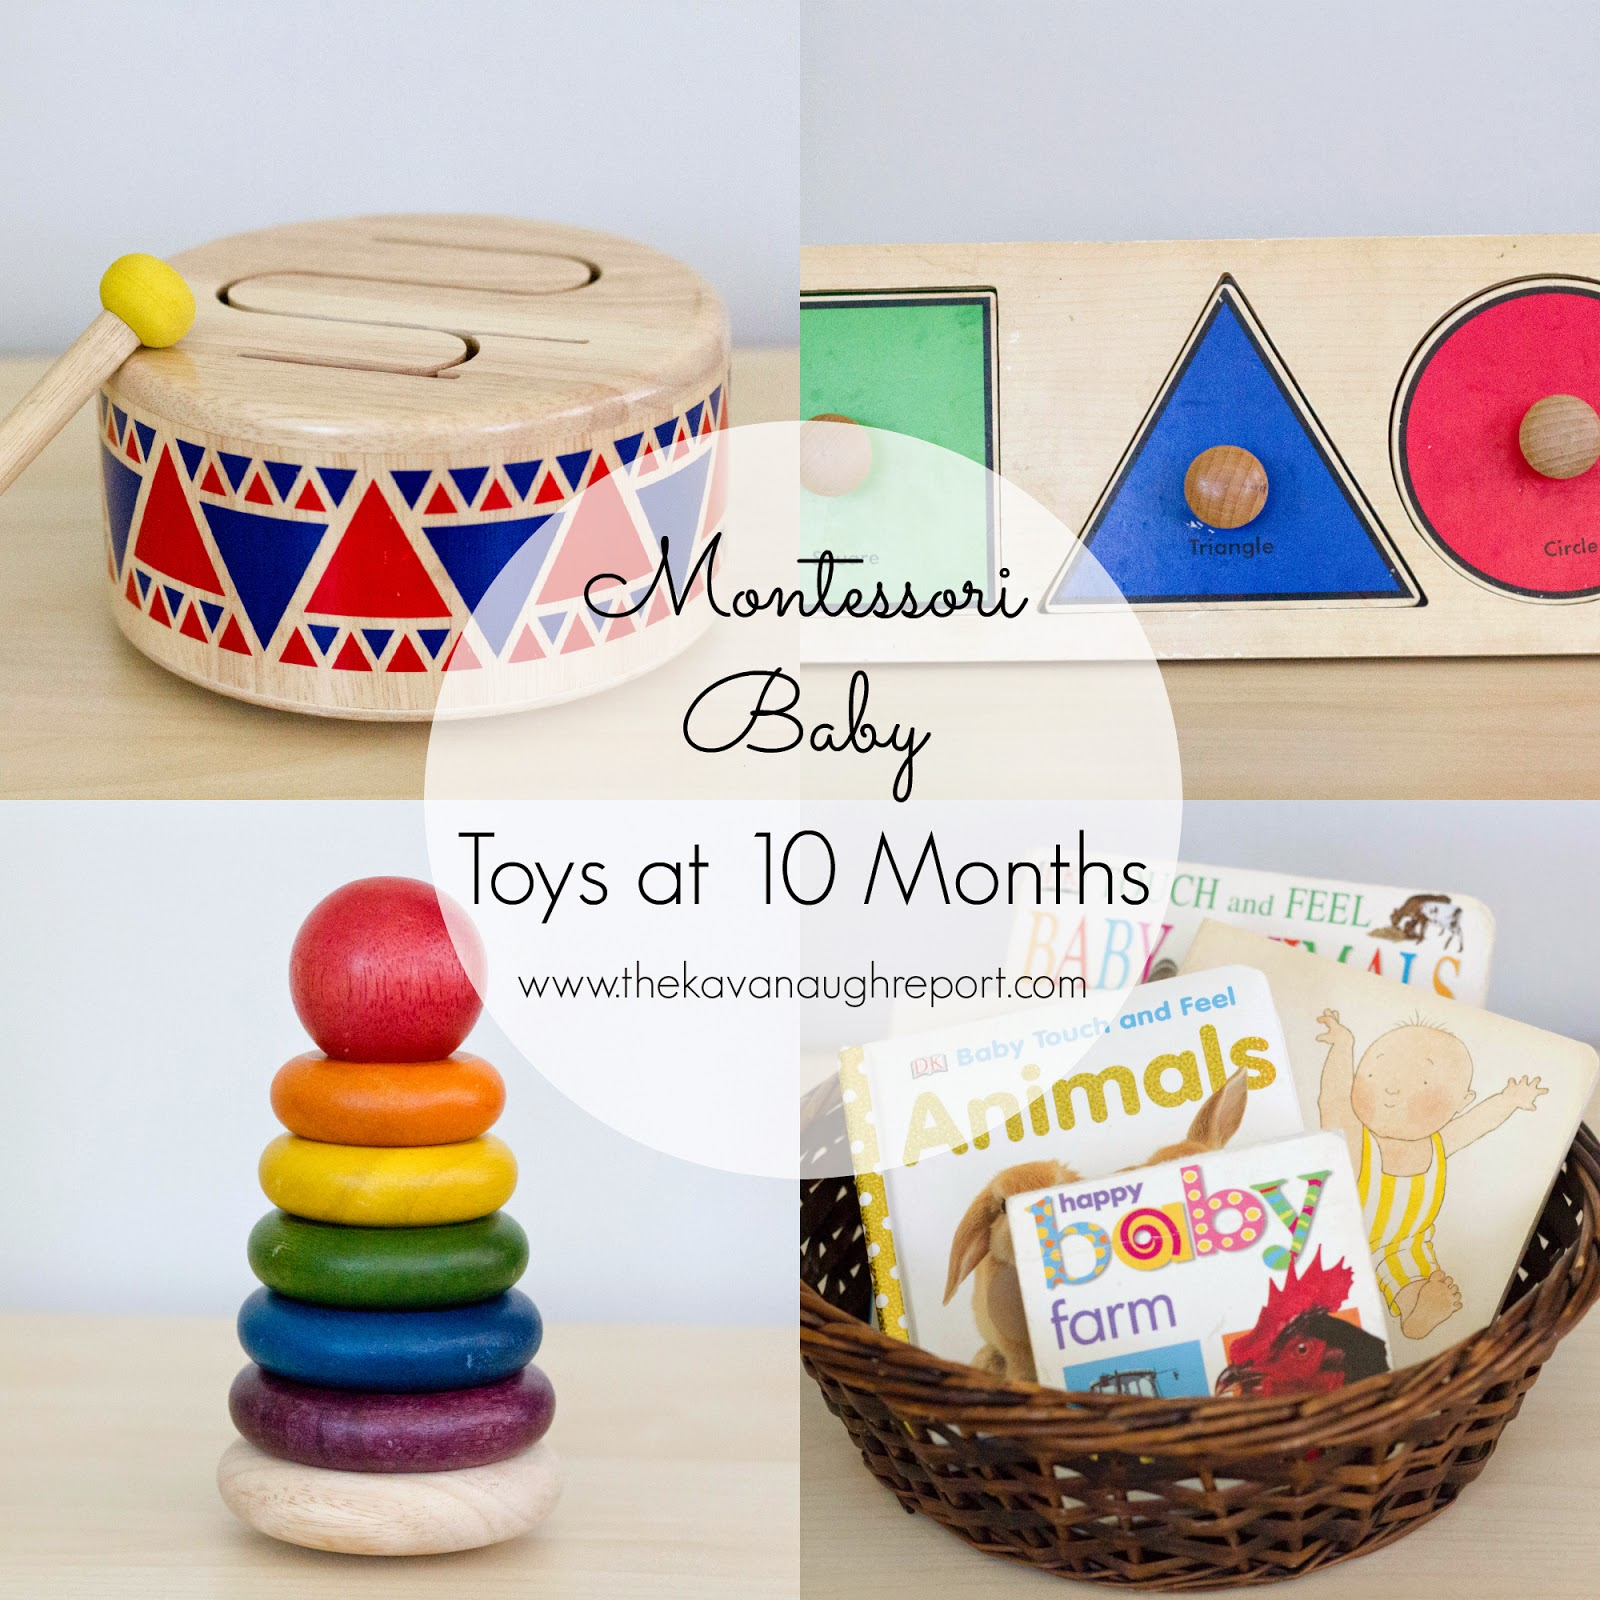 Montessori Baby Baby Toys 6 to 10 months